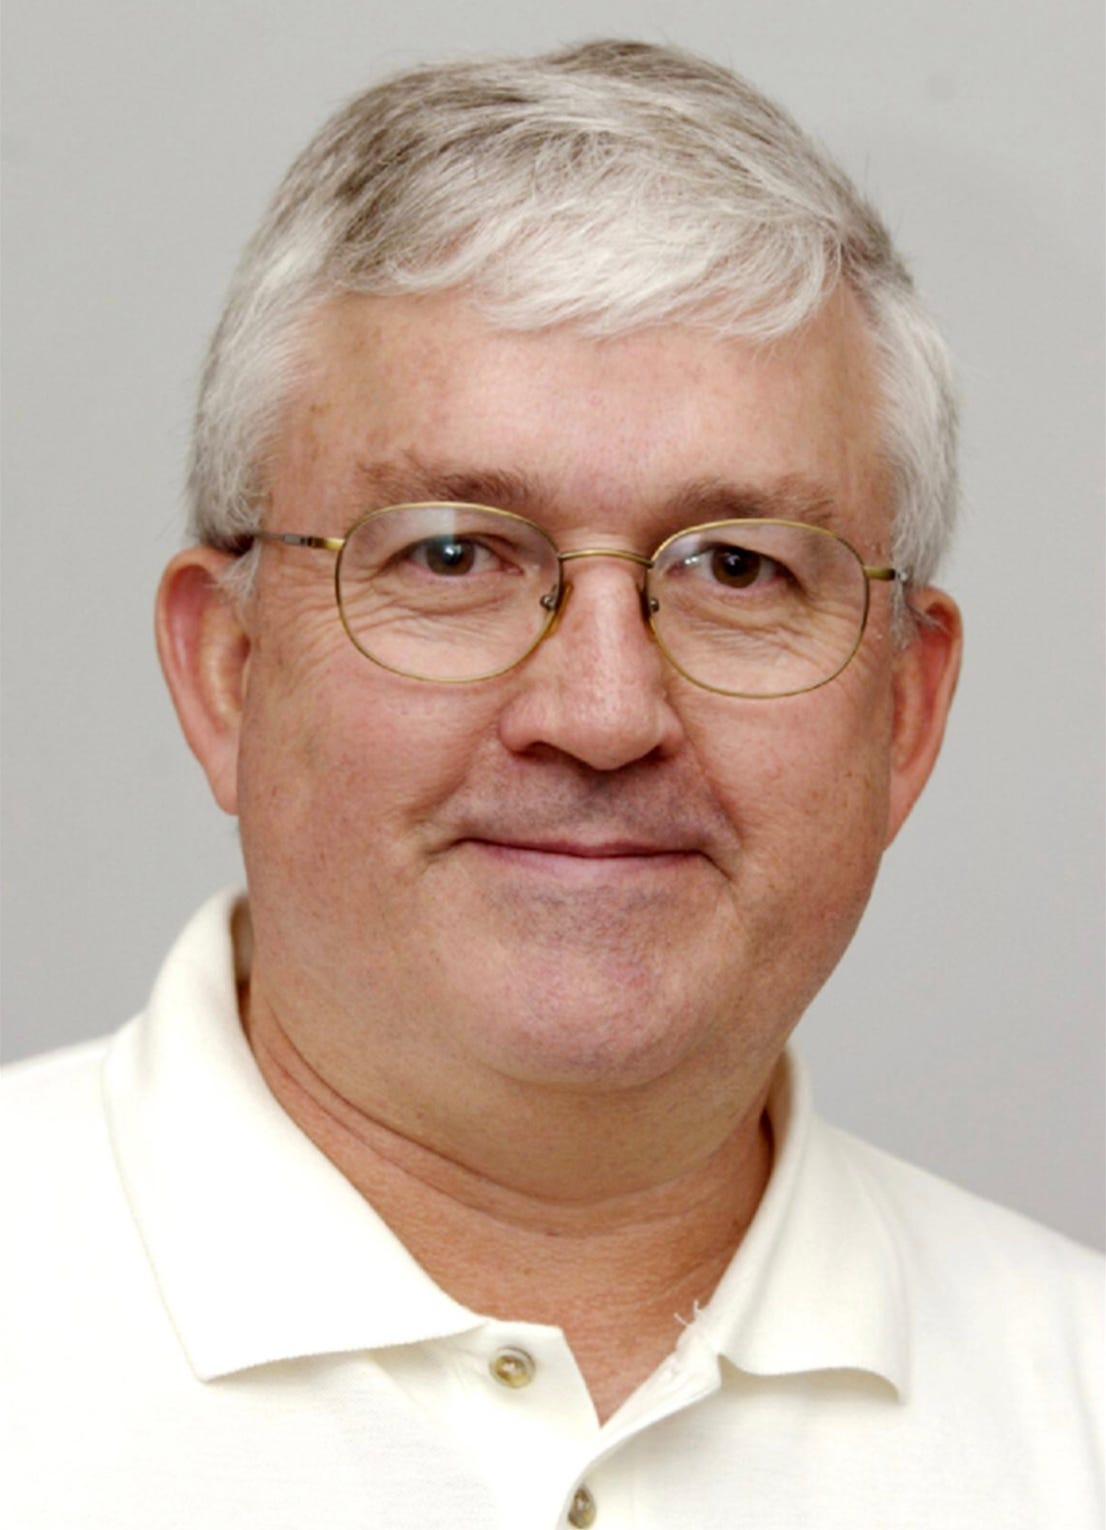 Tom Vint joined the Associated Press in 1980. He died of COVID-19 in September.